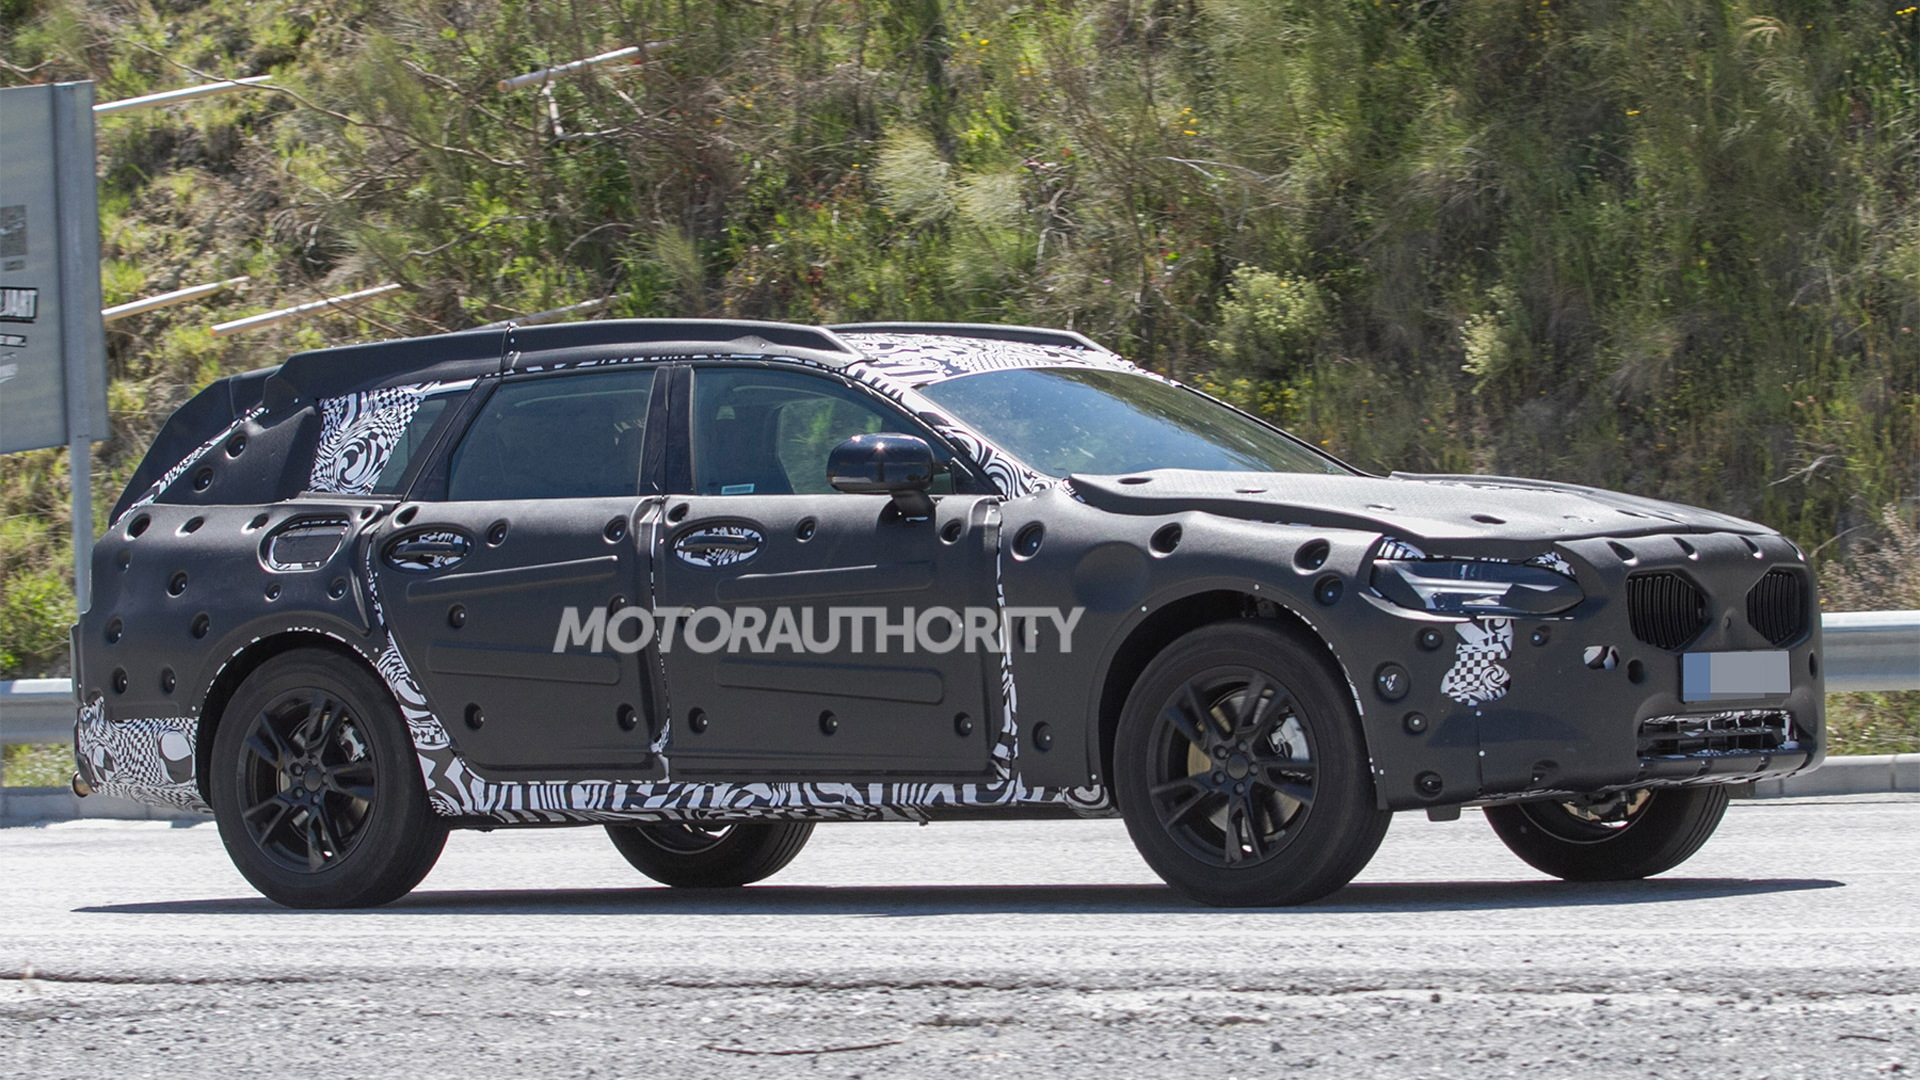 2018 Volvo V90 Cross Country spy shots - Image via S. Baldauf/SB-Medien